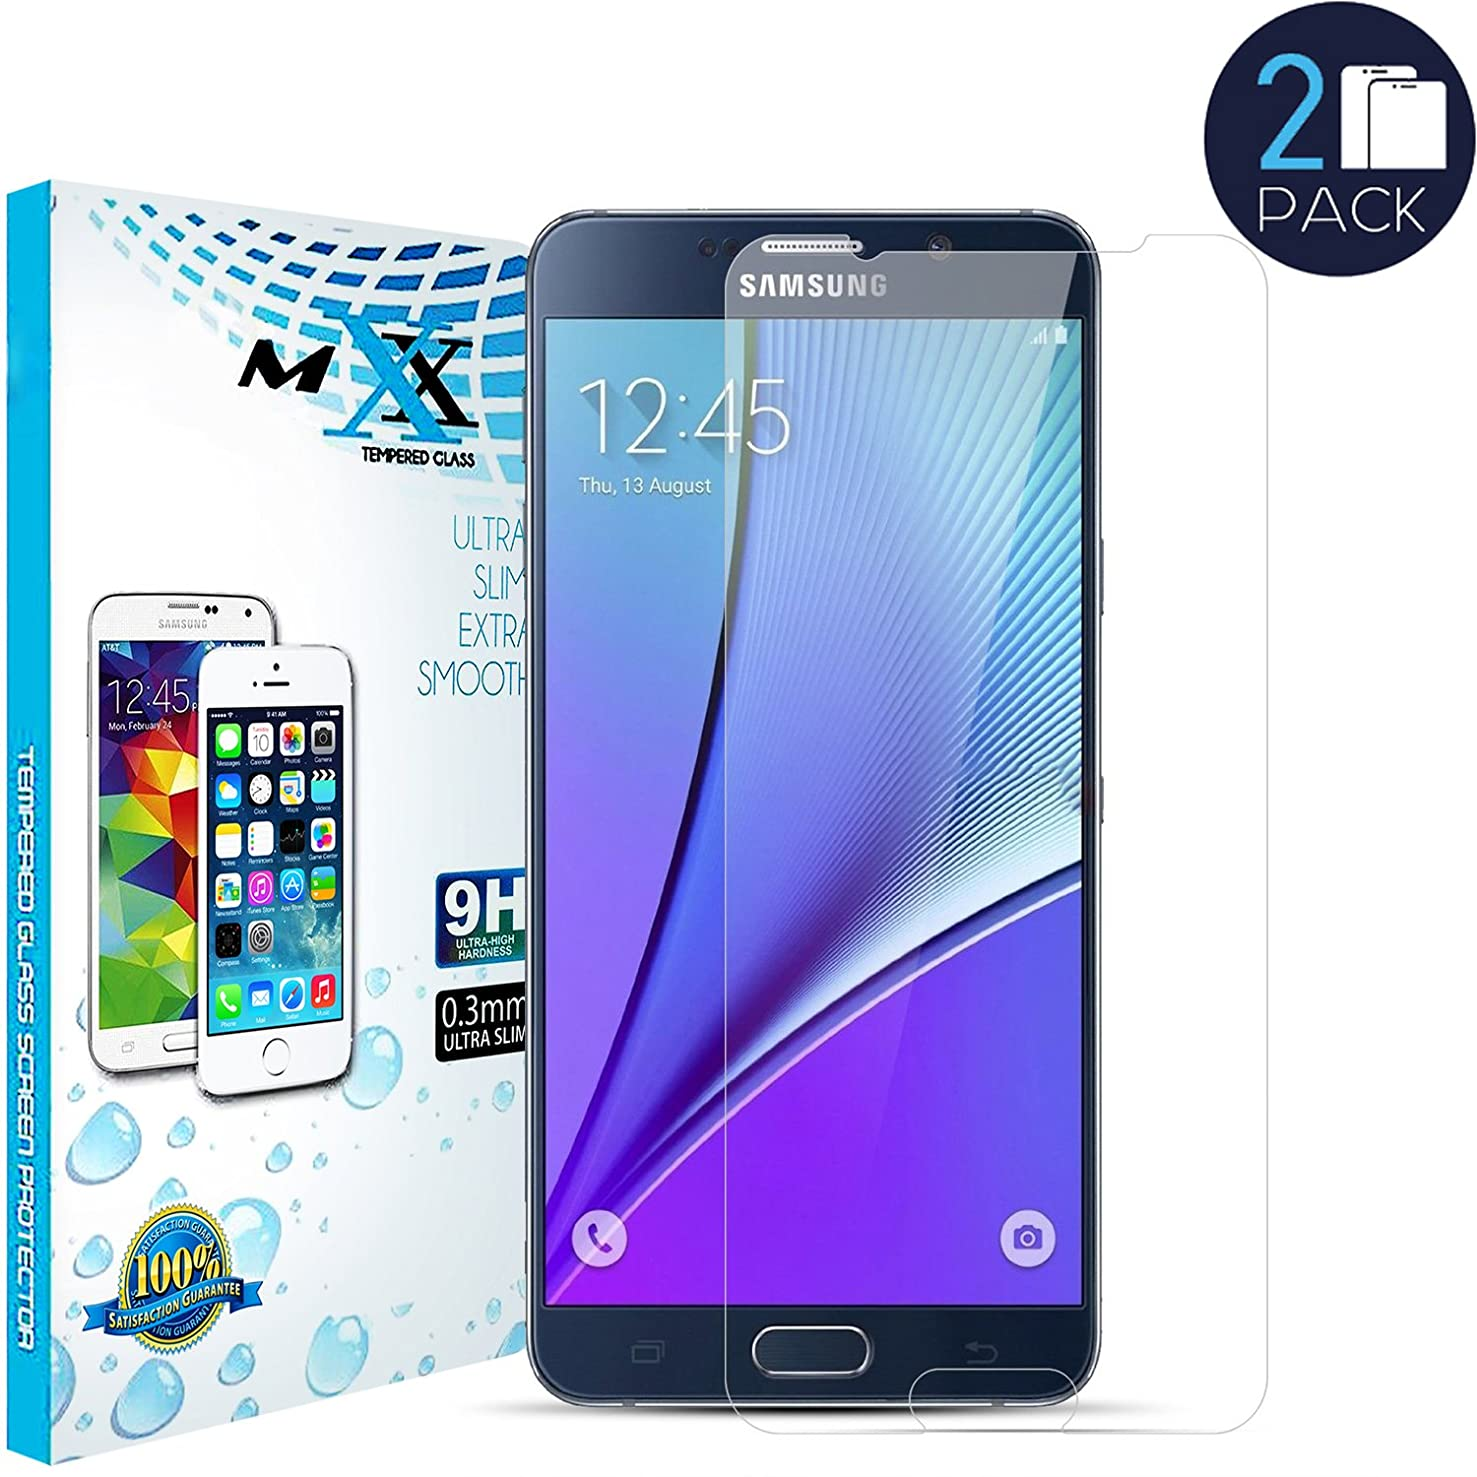 MXX Note 5 Screen Protector - Premium Ultra-Clear High Definition - Screen Protectors - Tempered Glass for Samsung Galaxy Note 5 - (Pack of 2)